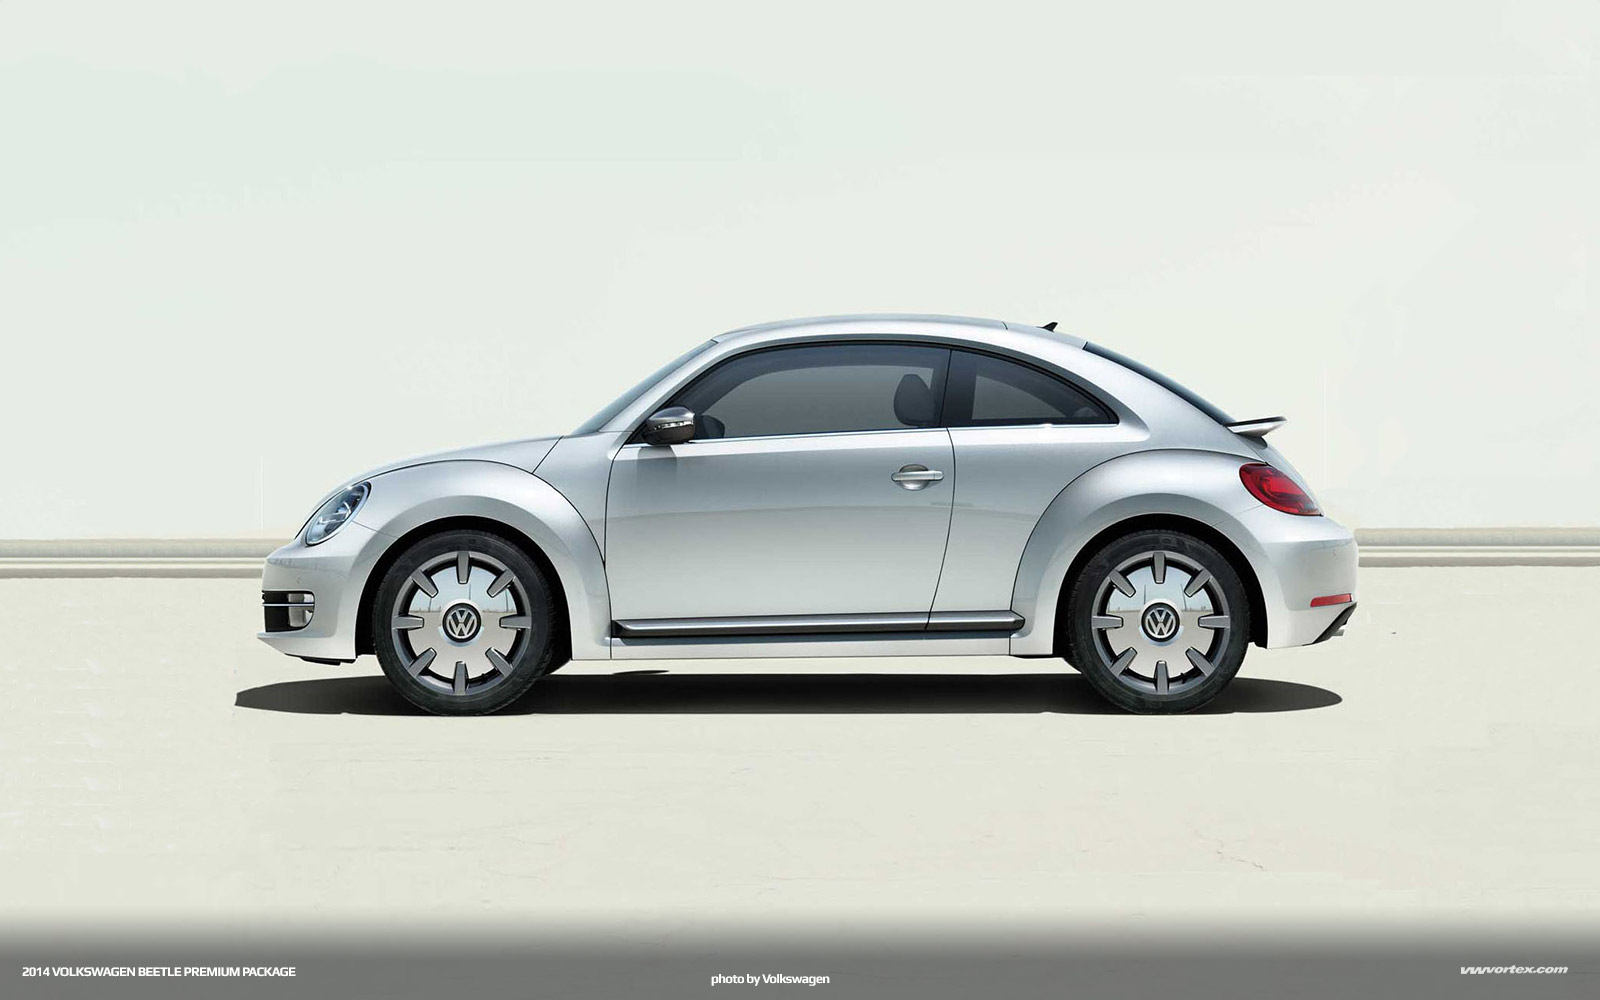 2014 volkswagen beetle coupe premium package 4 150x150